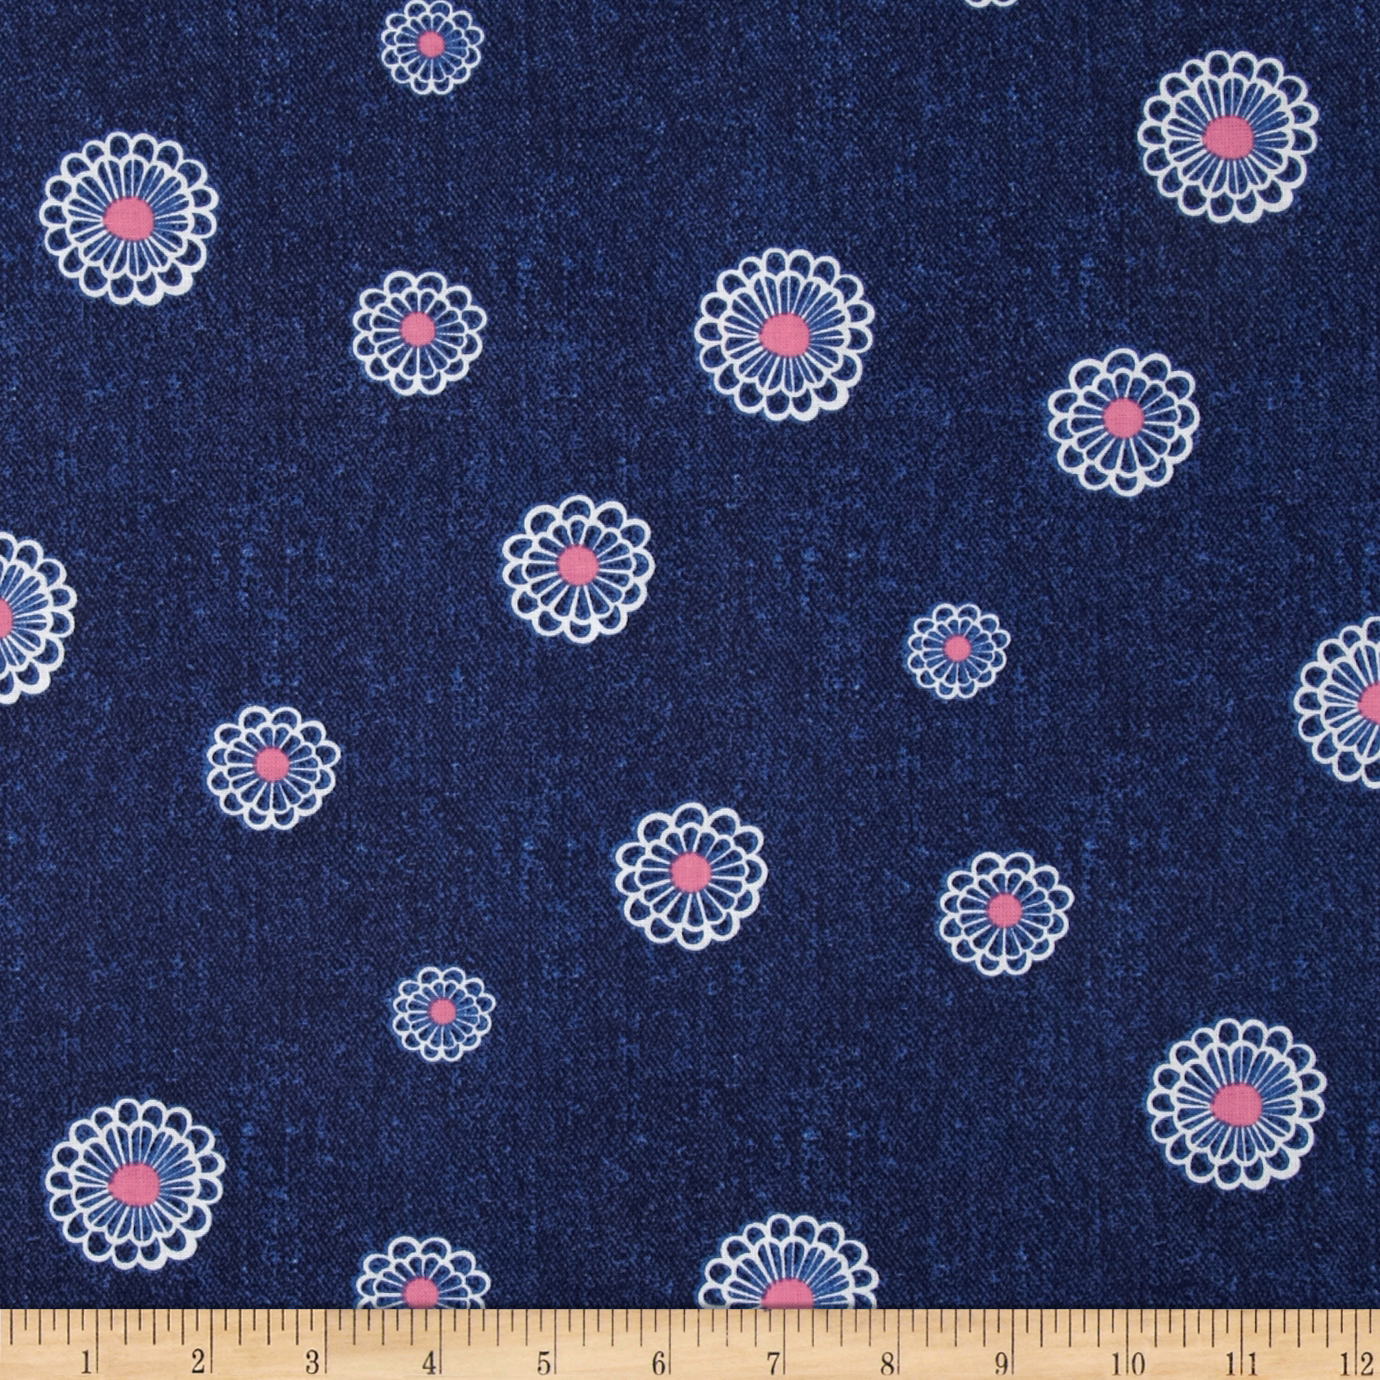 Kanvas Water Lily Denim Daisy Denim Fabric